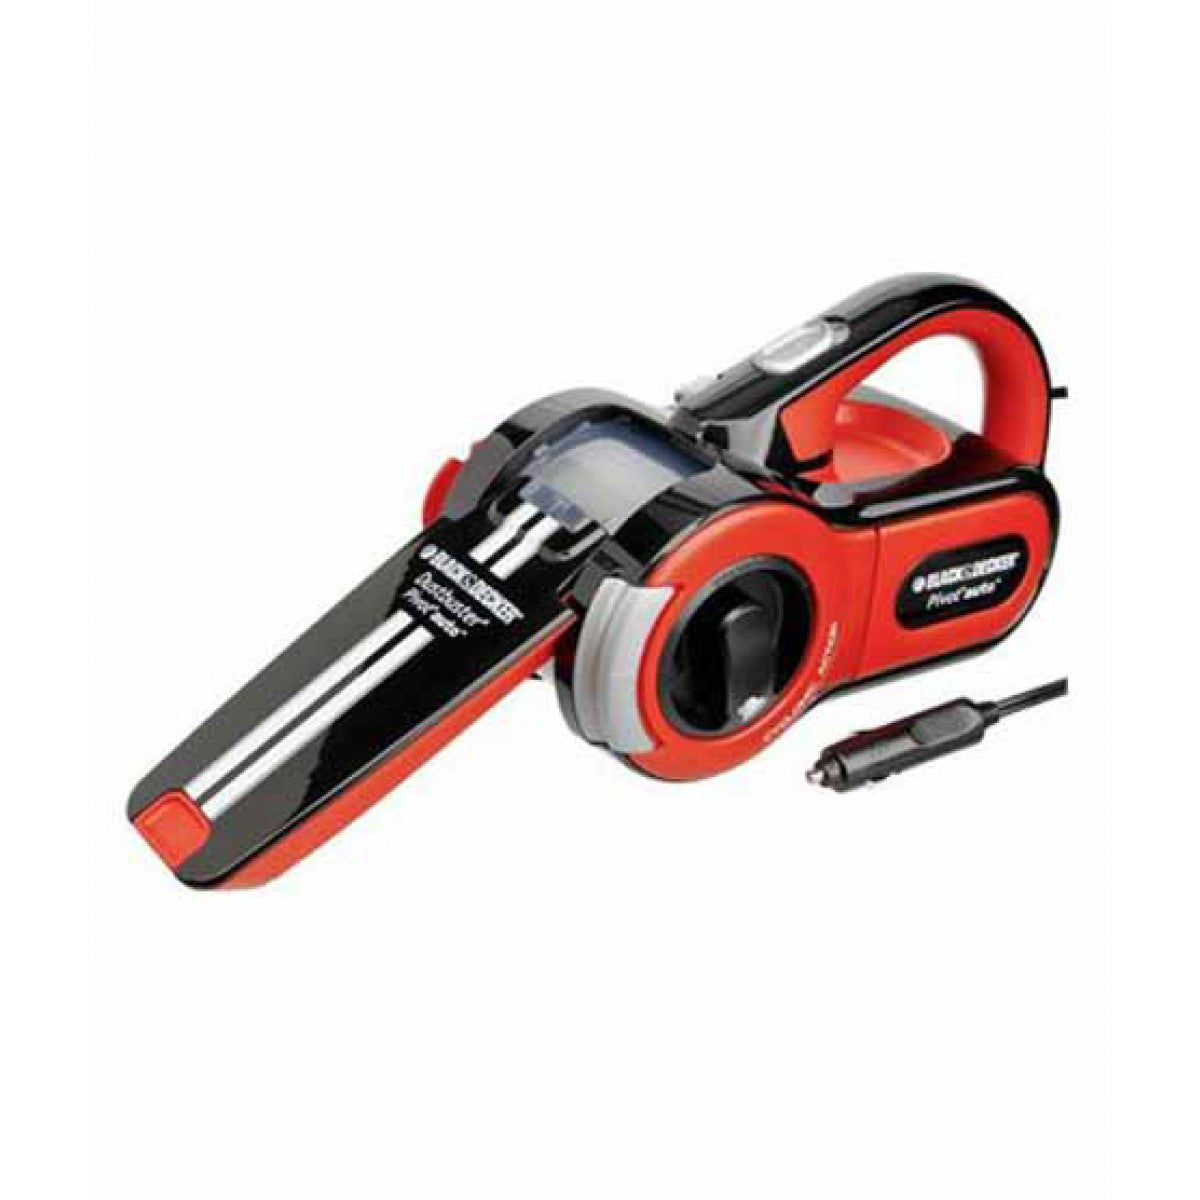 PAV 1205 Black & Decker Handy Car Vacuum - HomeBazar.pk - 1